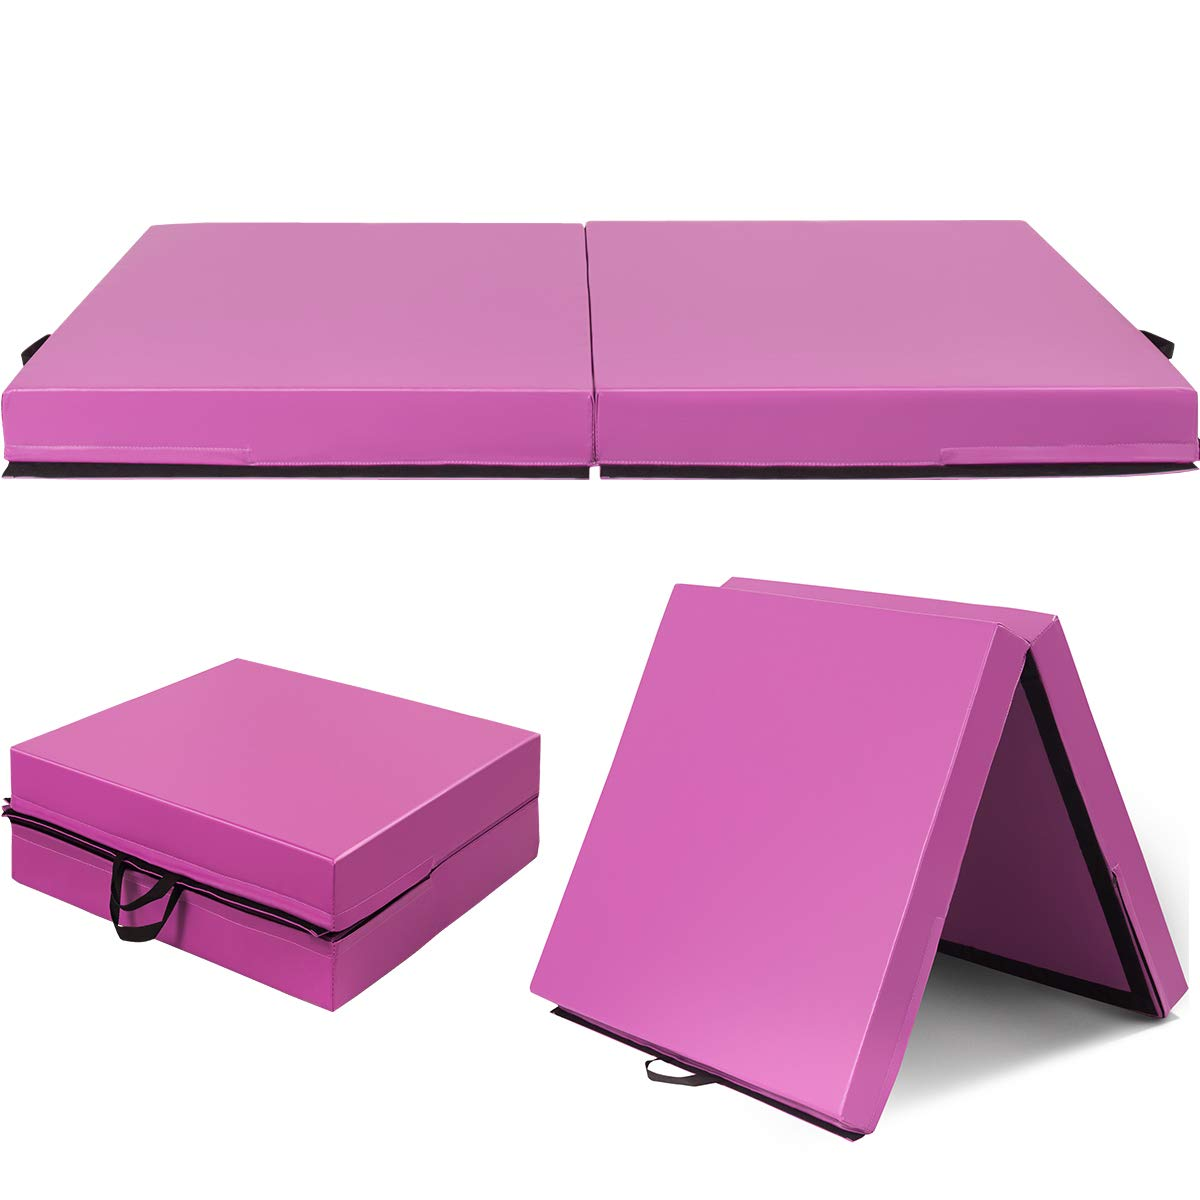 Giantex 6'x3.2'X4'' Gymnastics Mat Thick Folding Panel for for Gym, Yoga, Martial Arts with Hook & Loop Fasteners